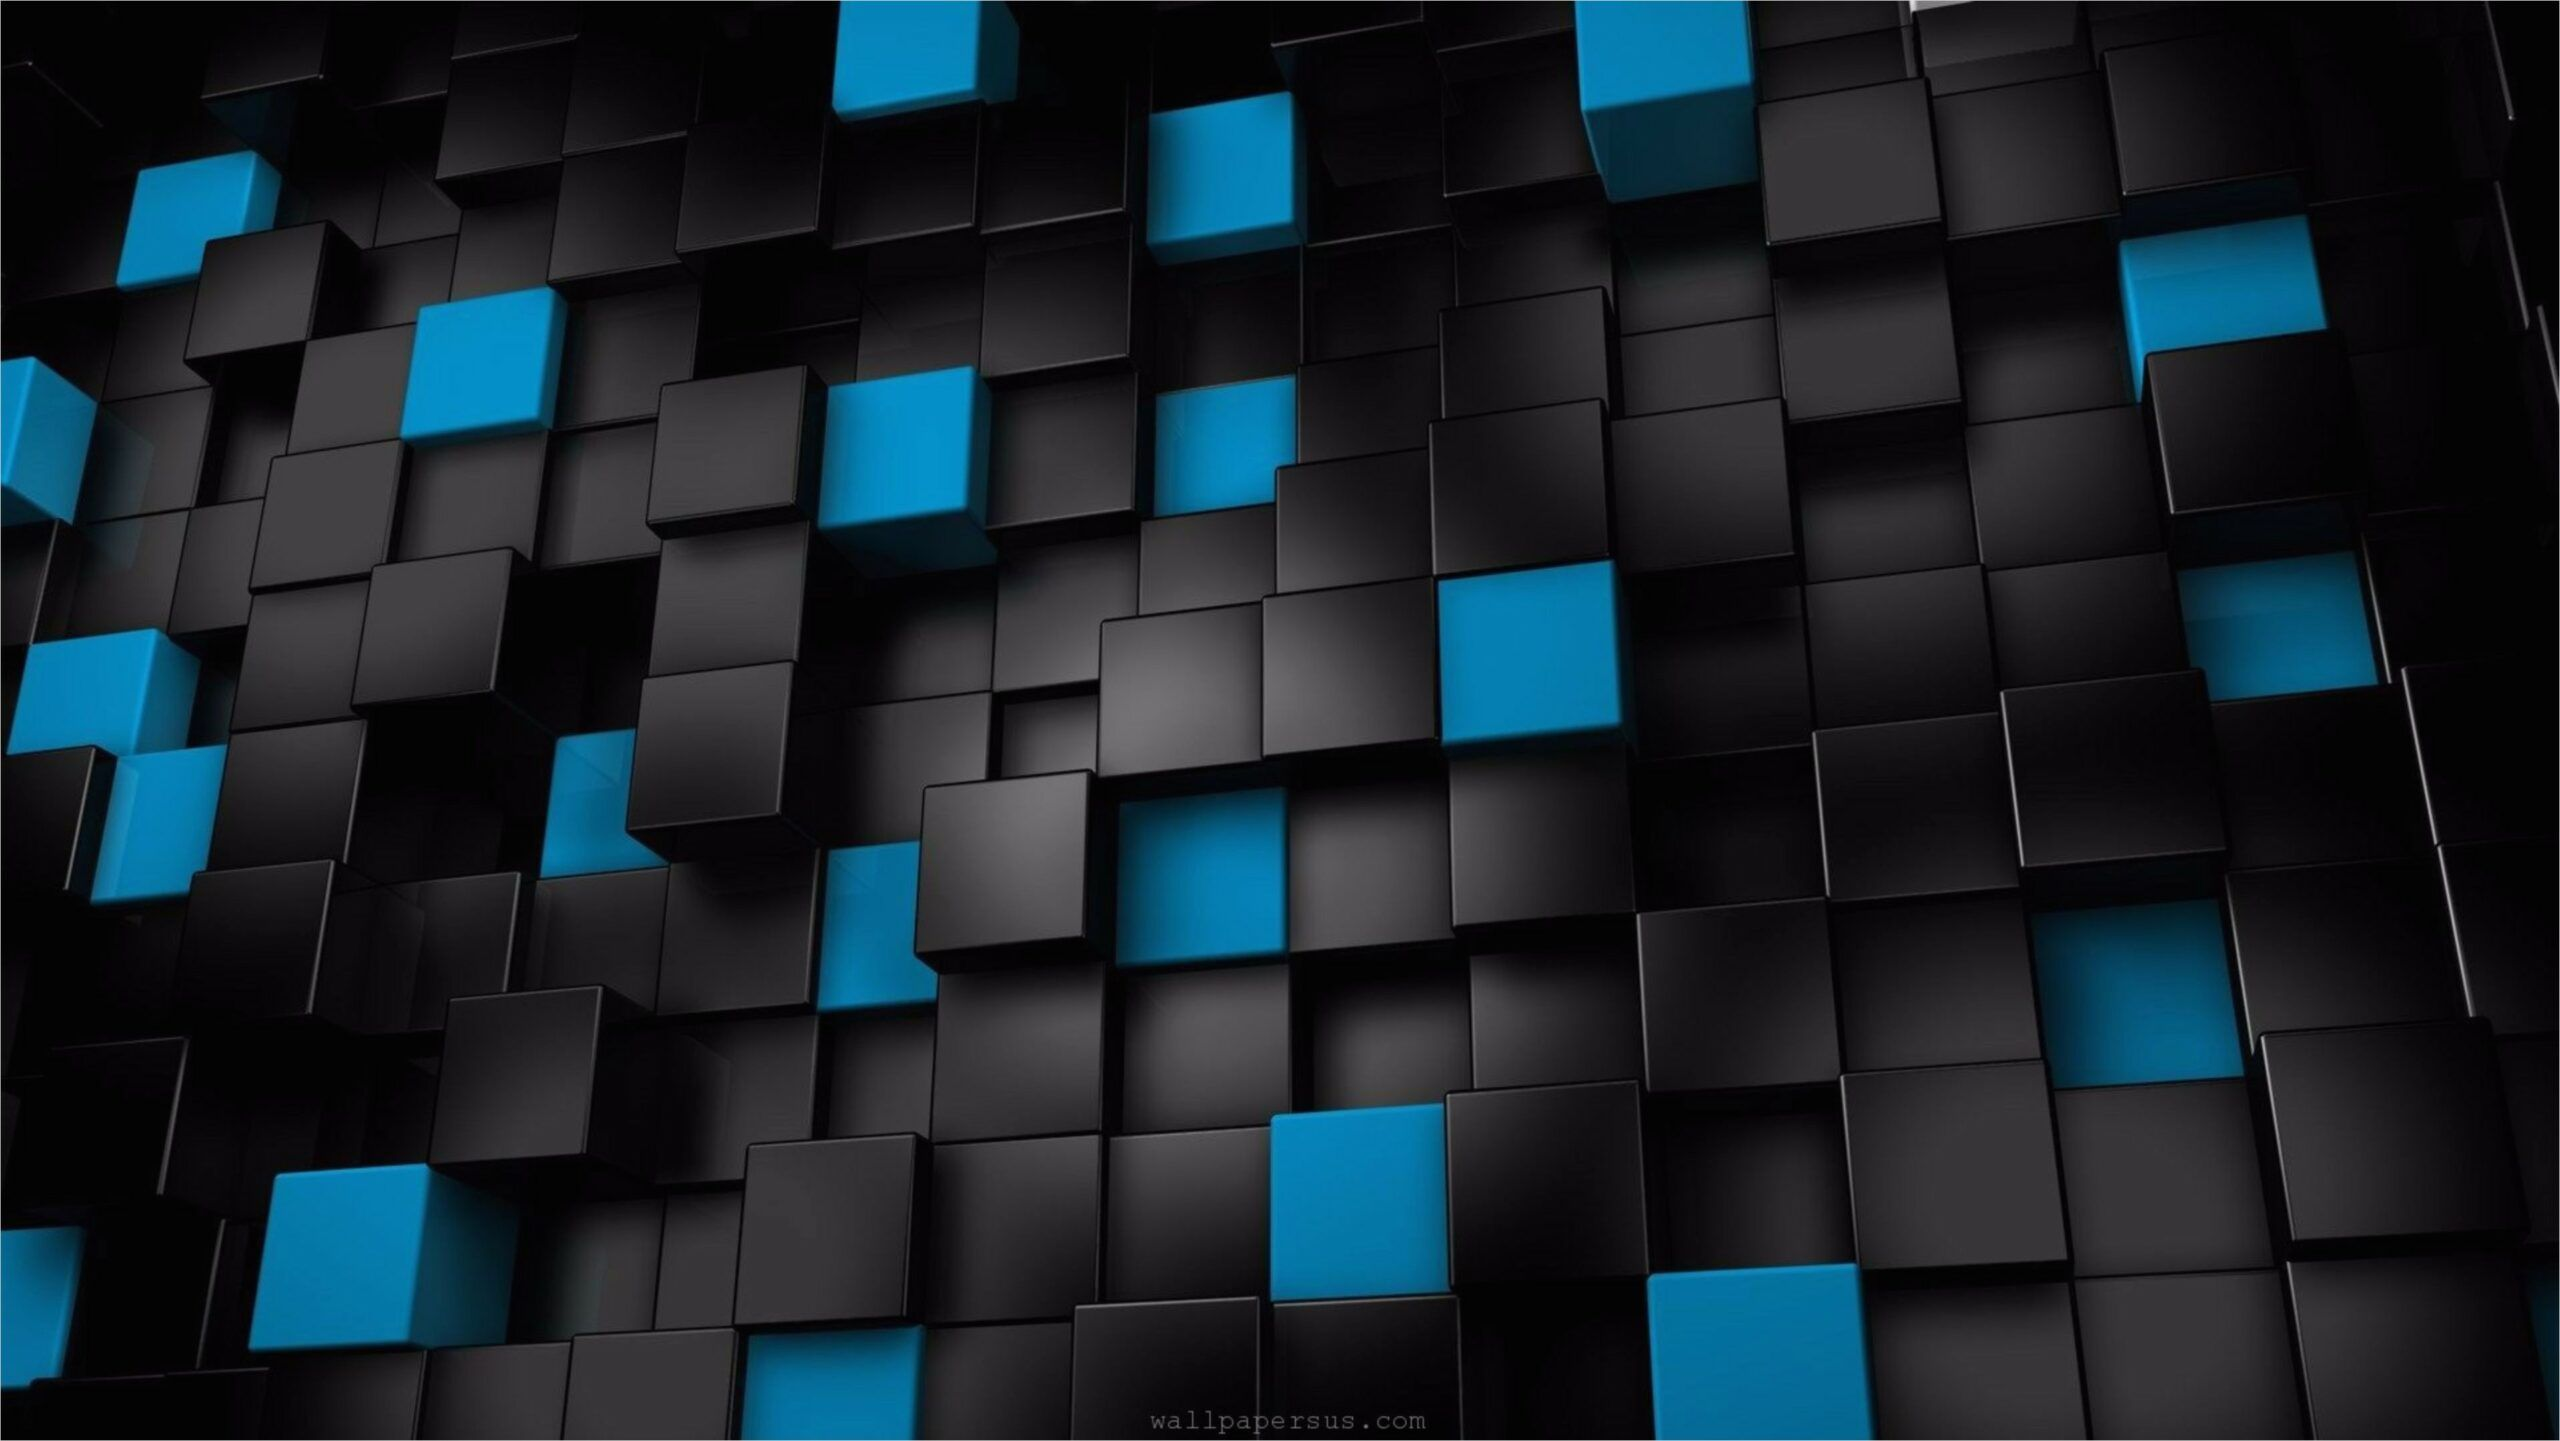 4k Blue Black Wallpaper In 2020 Black And Blue Wallpaper Cool Blue Wallpaper 3d Cube Wallpaper